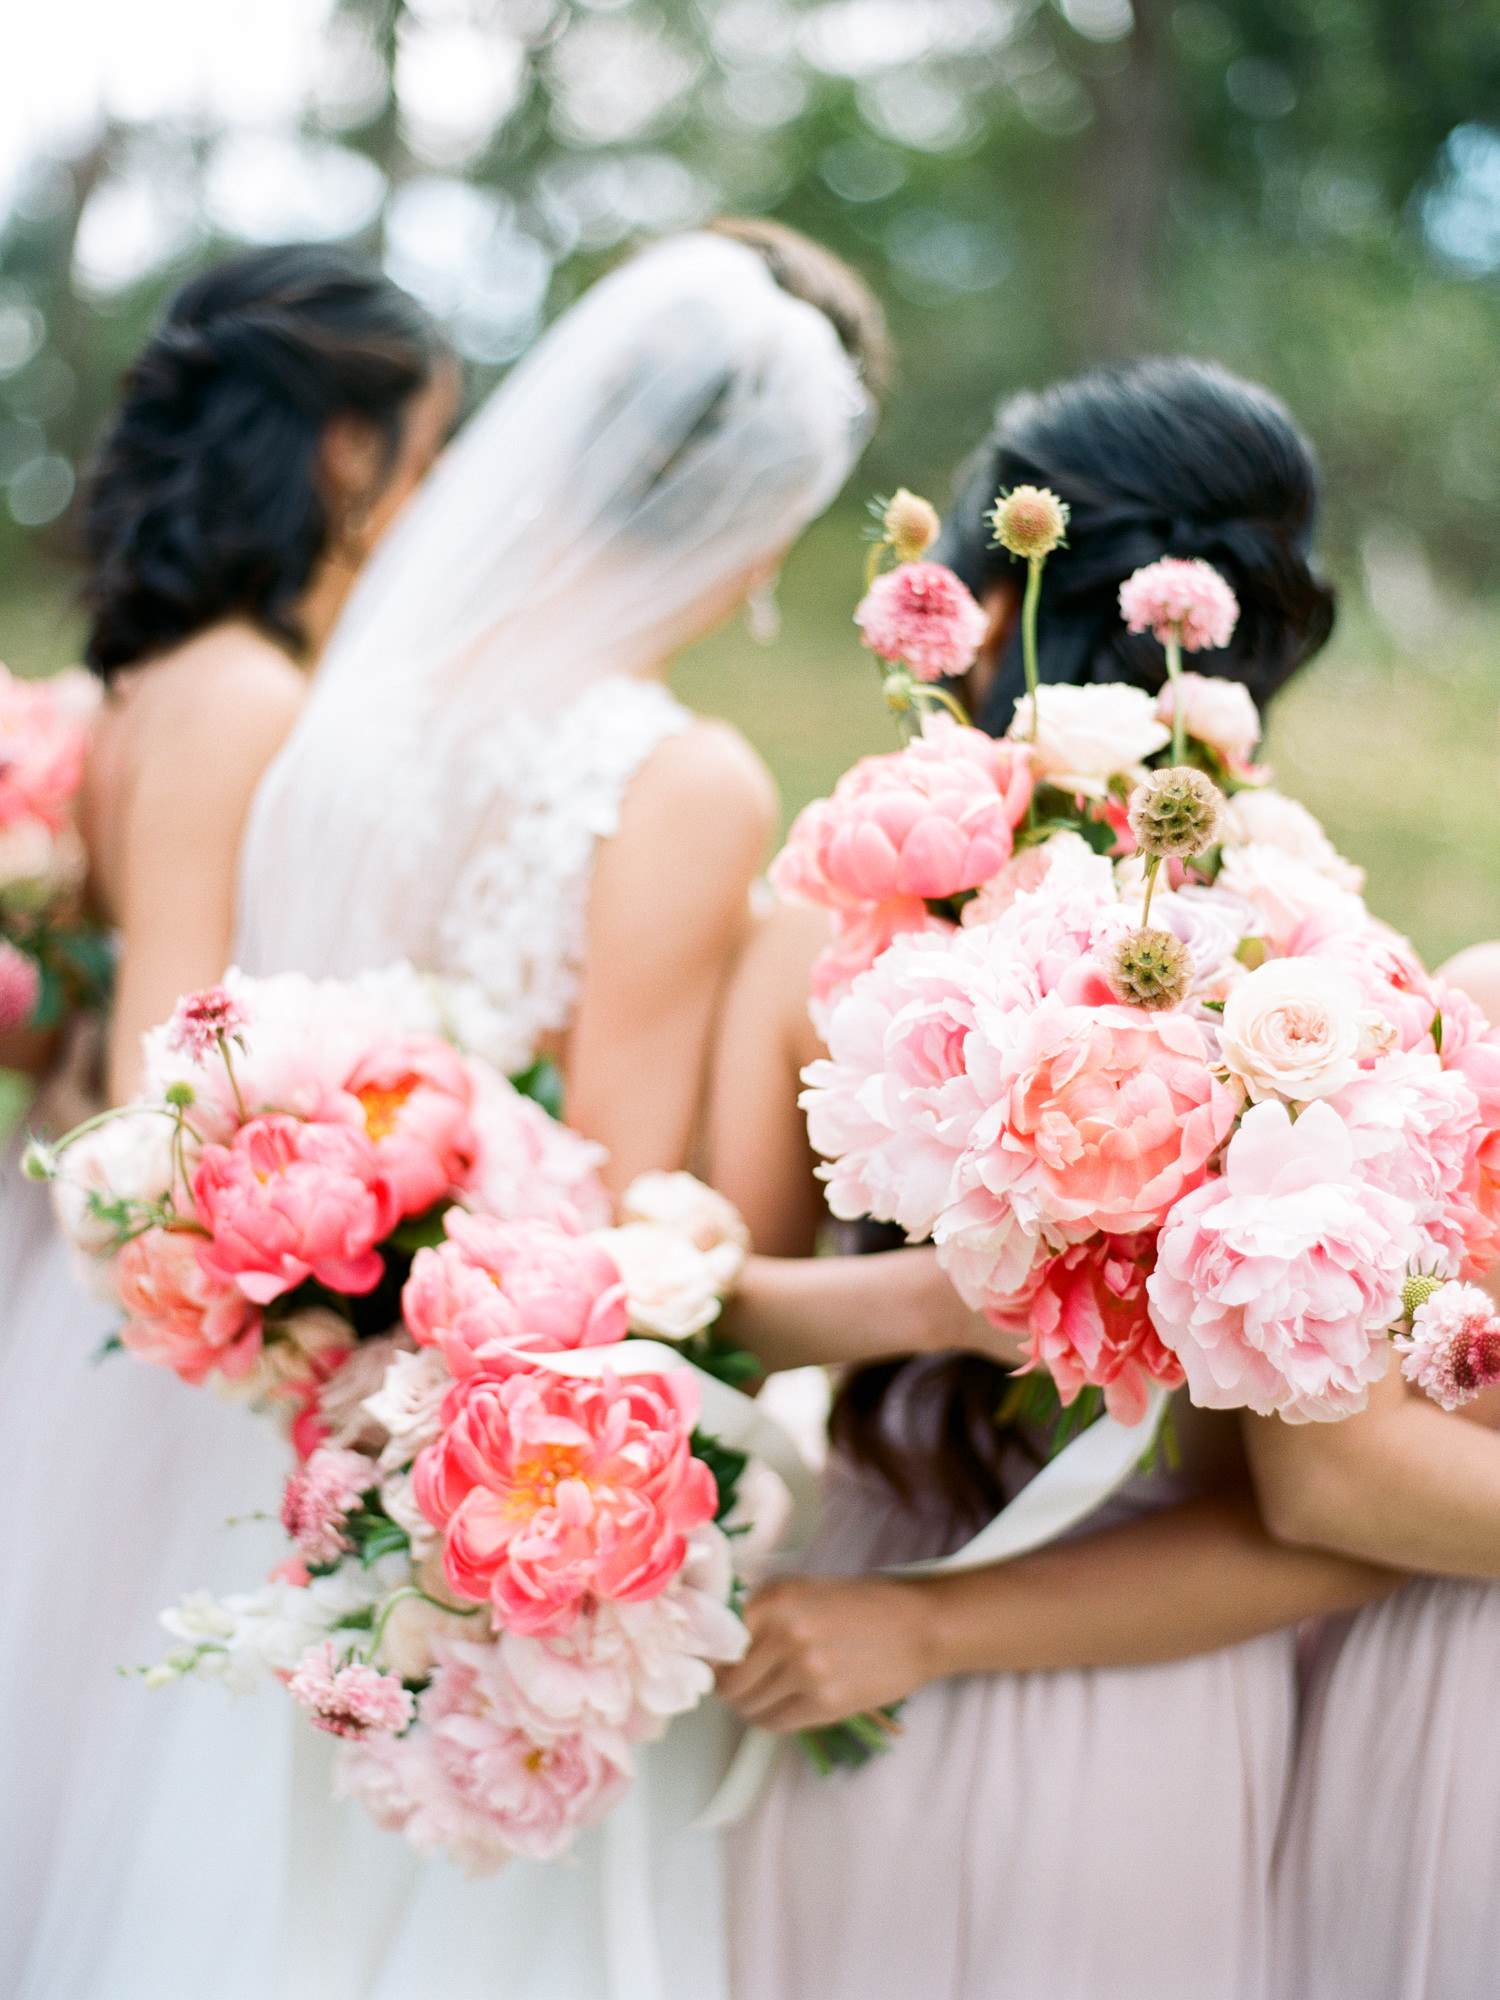 With Love - Chanele Rose Flowers & Styling